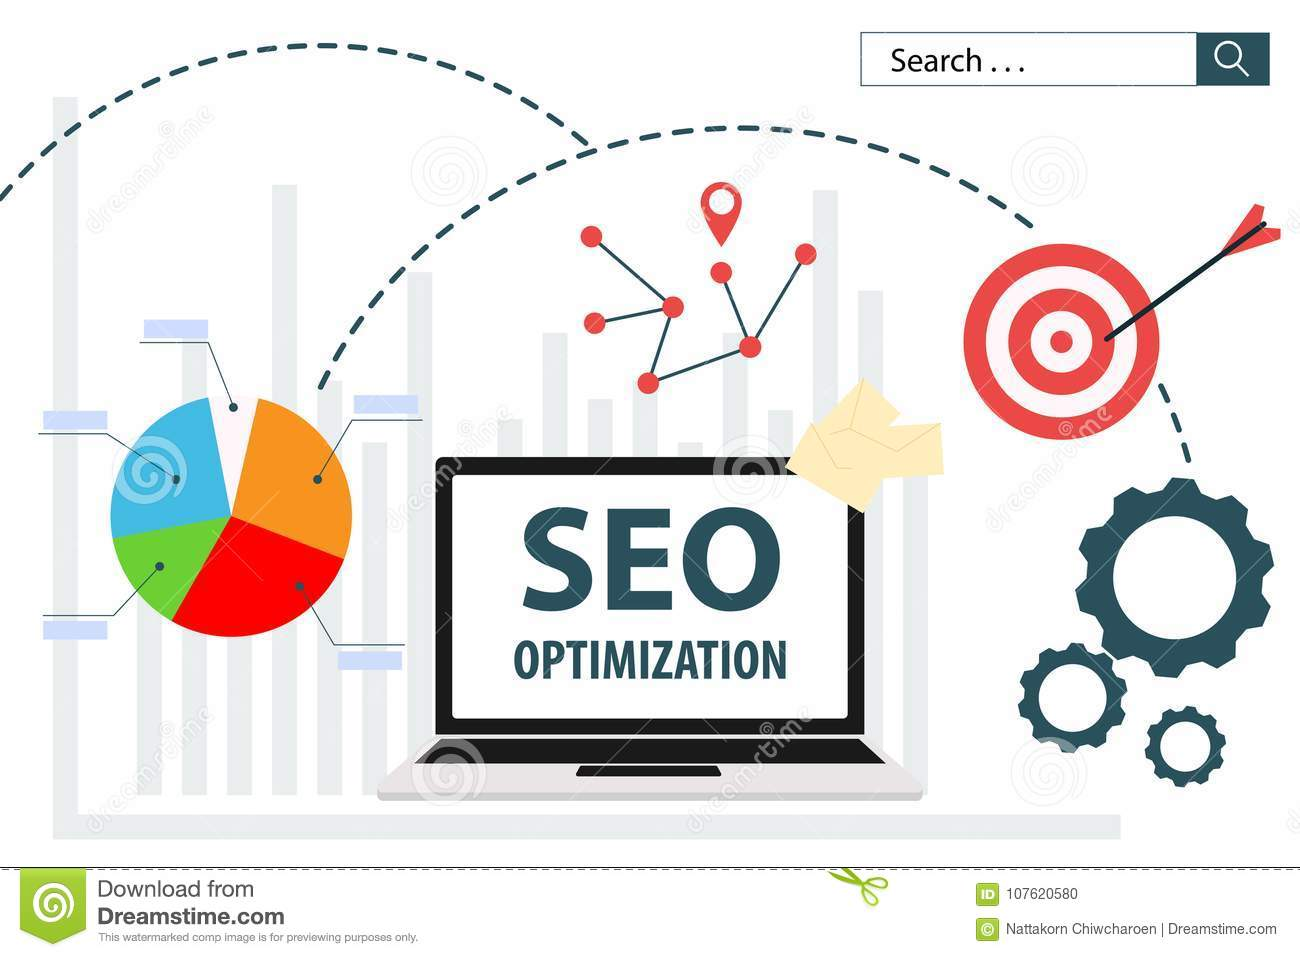 Vektorillustrationsnetz-Analytikdesign SEO Optimizations flaches